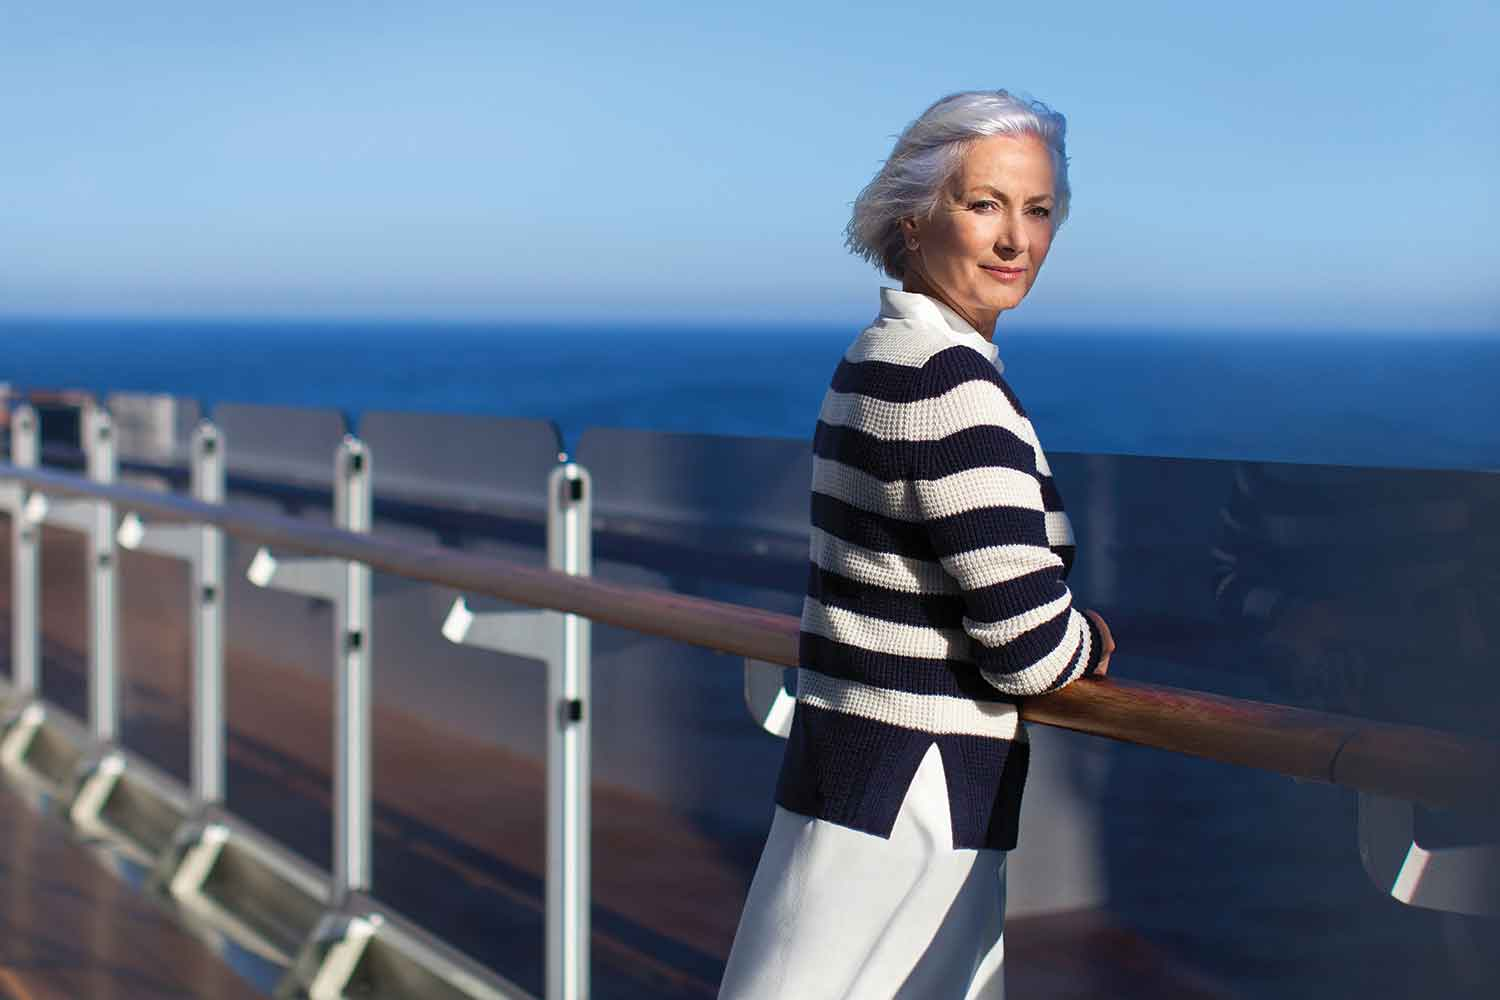 Dress code freestyle - Harking Back To The Firm S Roots As A Pioneer Of Luxury Transatlantic Cruising Cunard S Dress Codes Are Quite Extensive Varying According To The